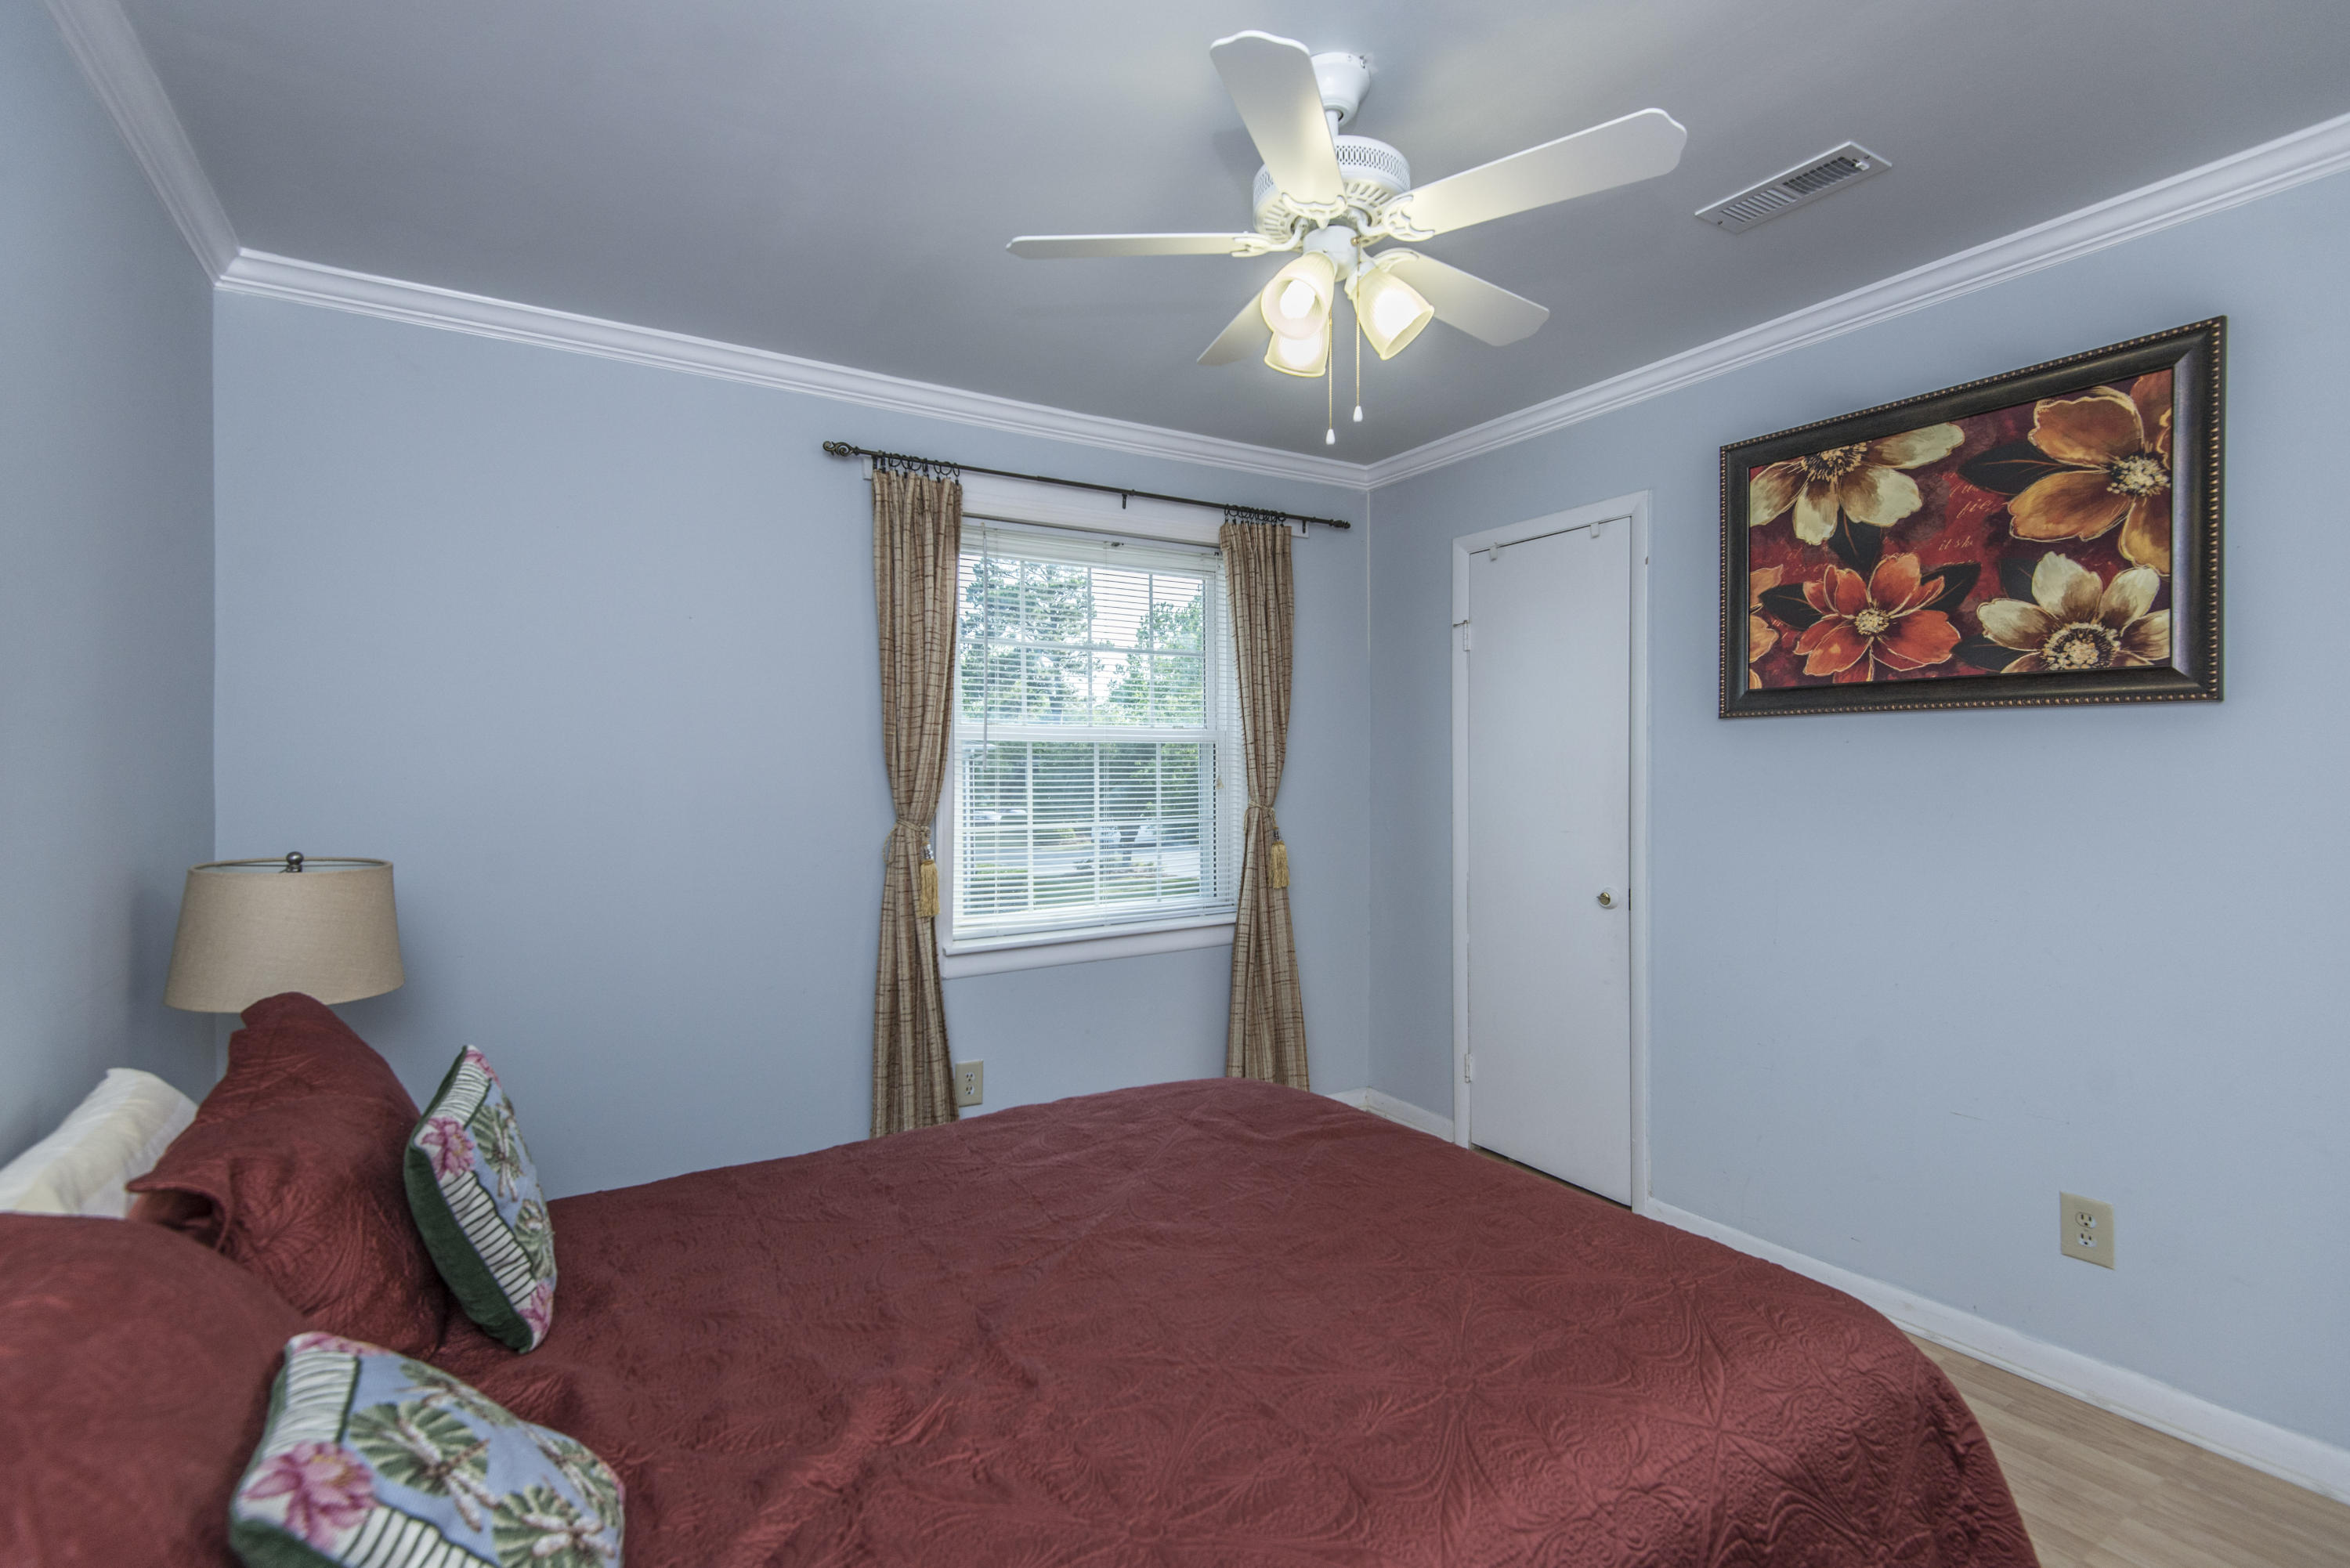 Rivers Point Row Homes For Sale - 21 Rivers Point Row, Charleston, SC - 15